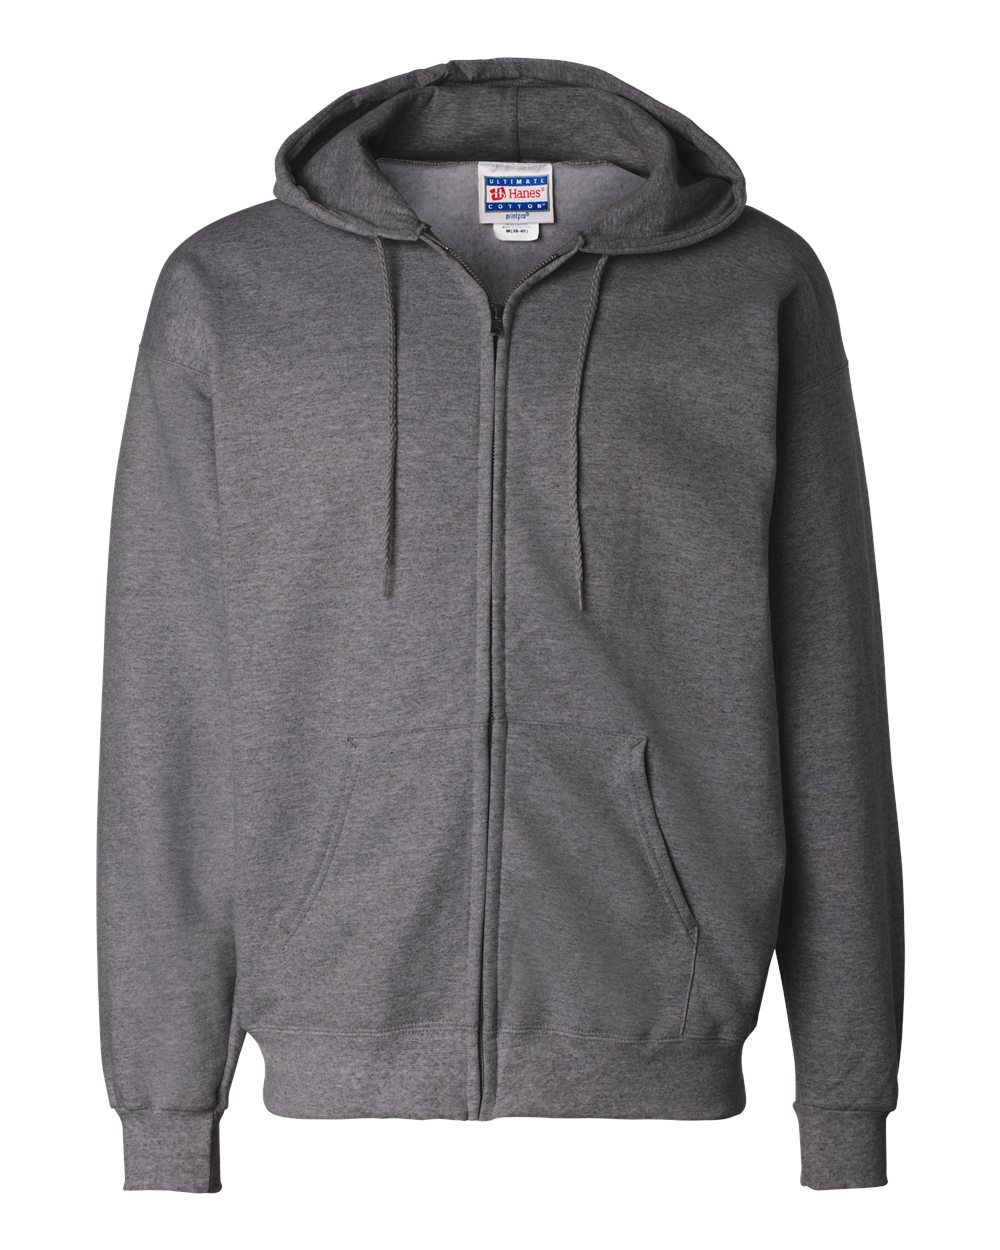 Hanes-Mens-Blank-Ultimate-Cotton-Full-Zip-Hooded-Sweatshirt-F280-up-to-3XL miniature 9